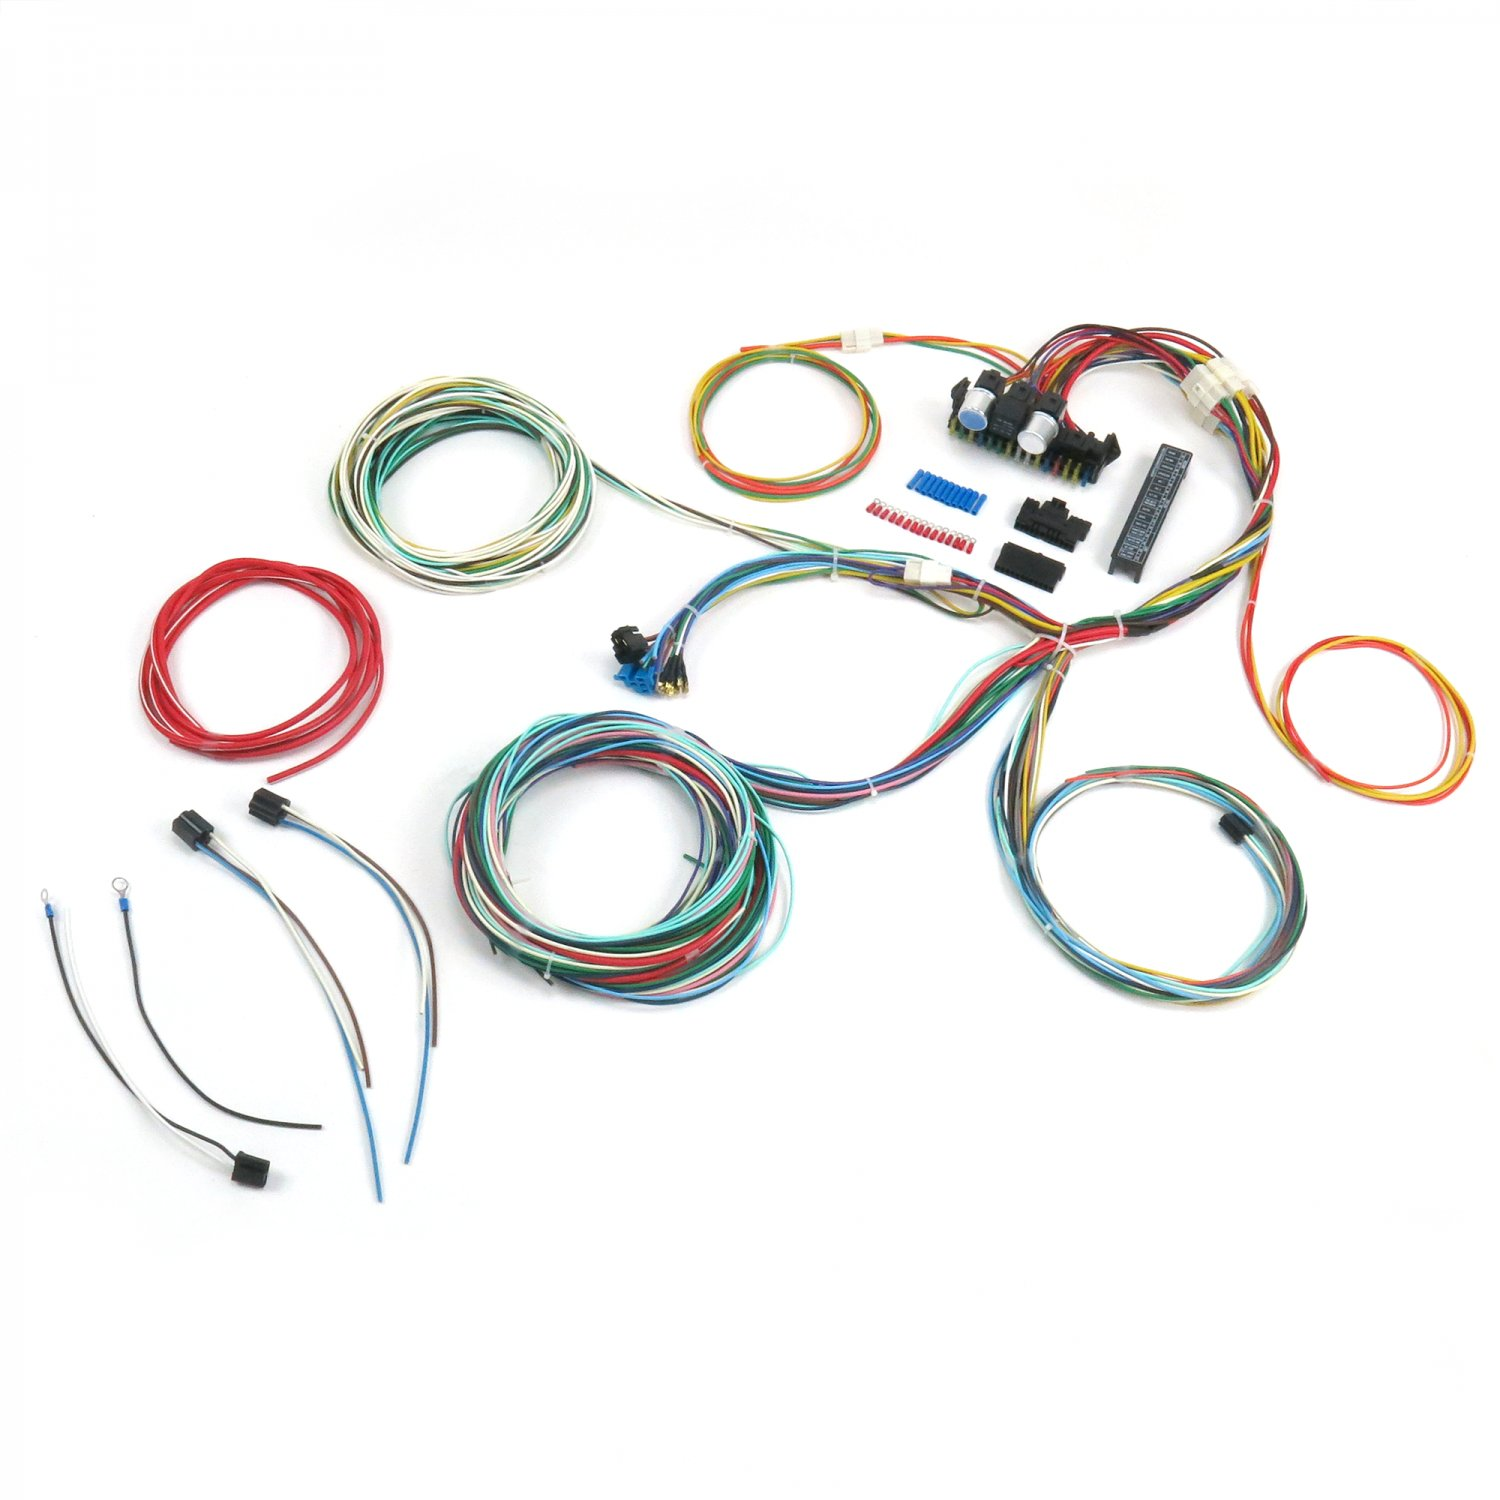 keep it clean wiring diagram alpine cda 9856 15 fuse 24 circuit wire harness system fits kwik 12v